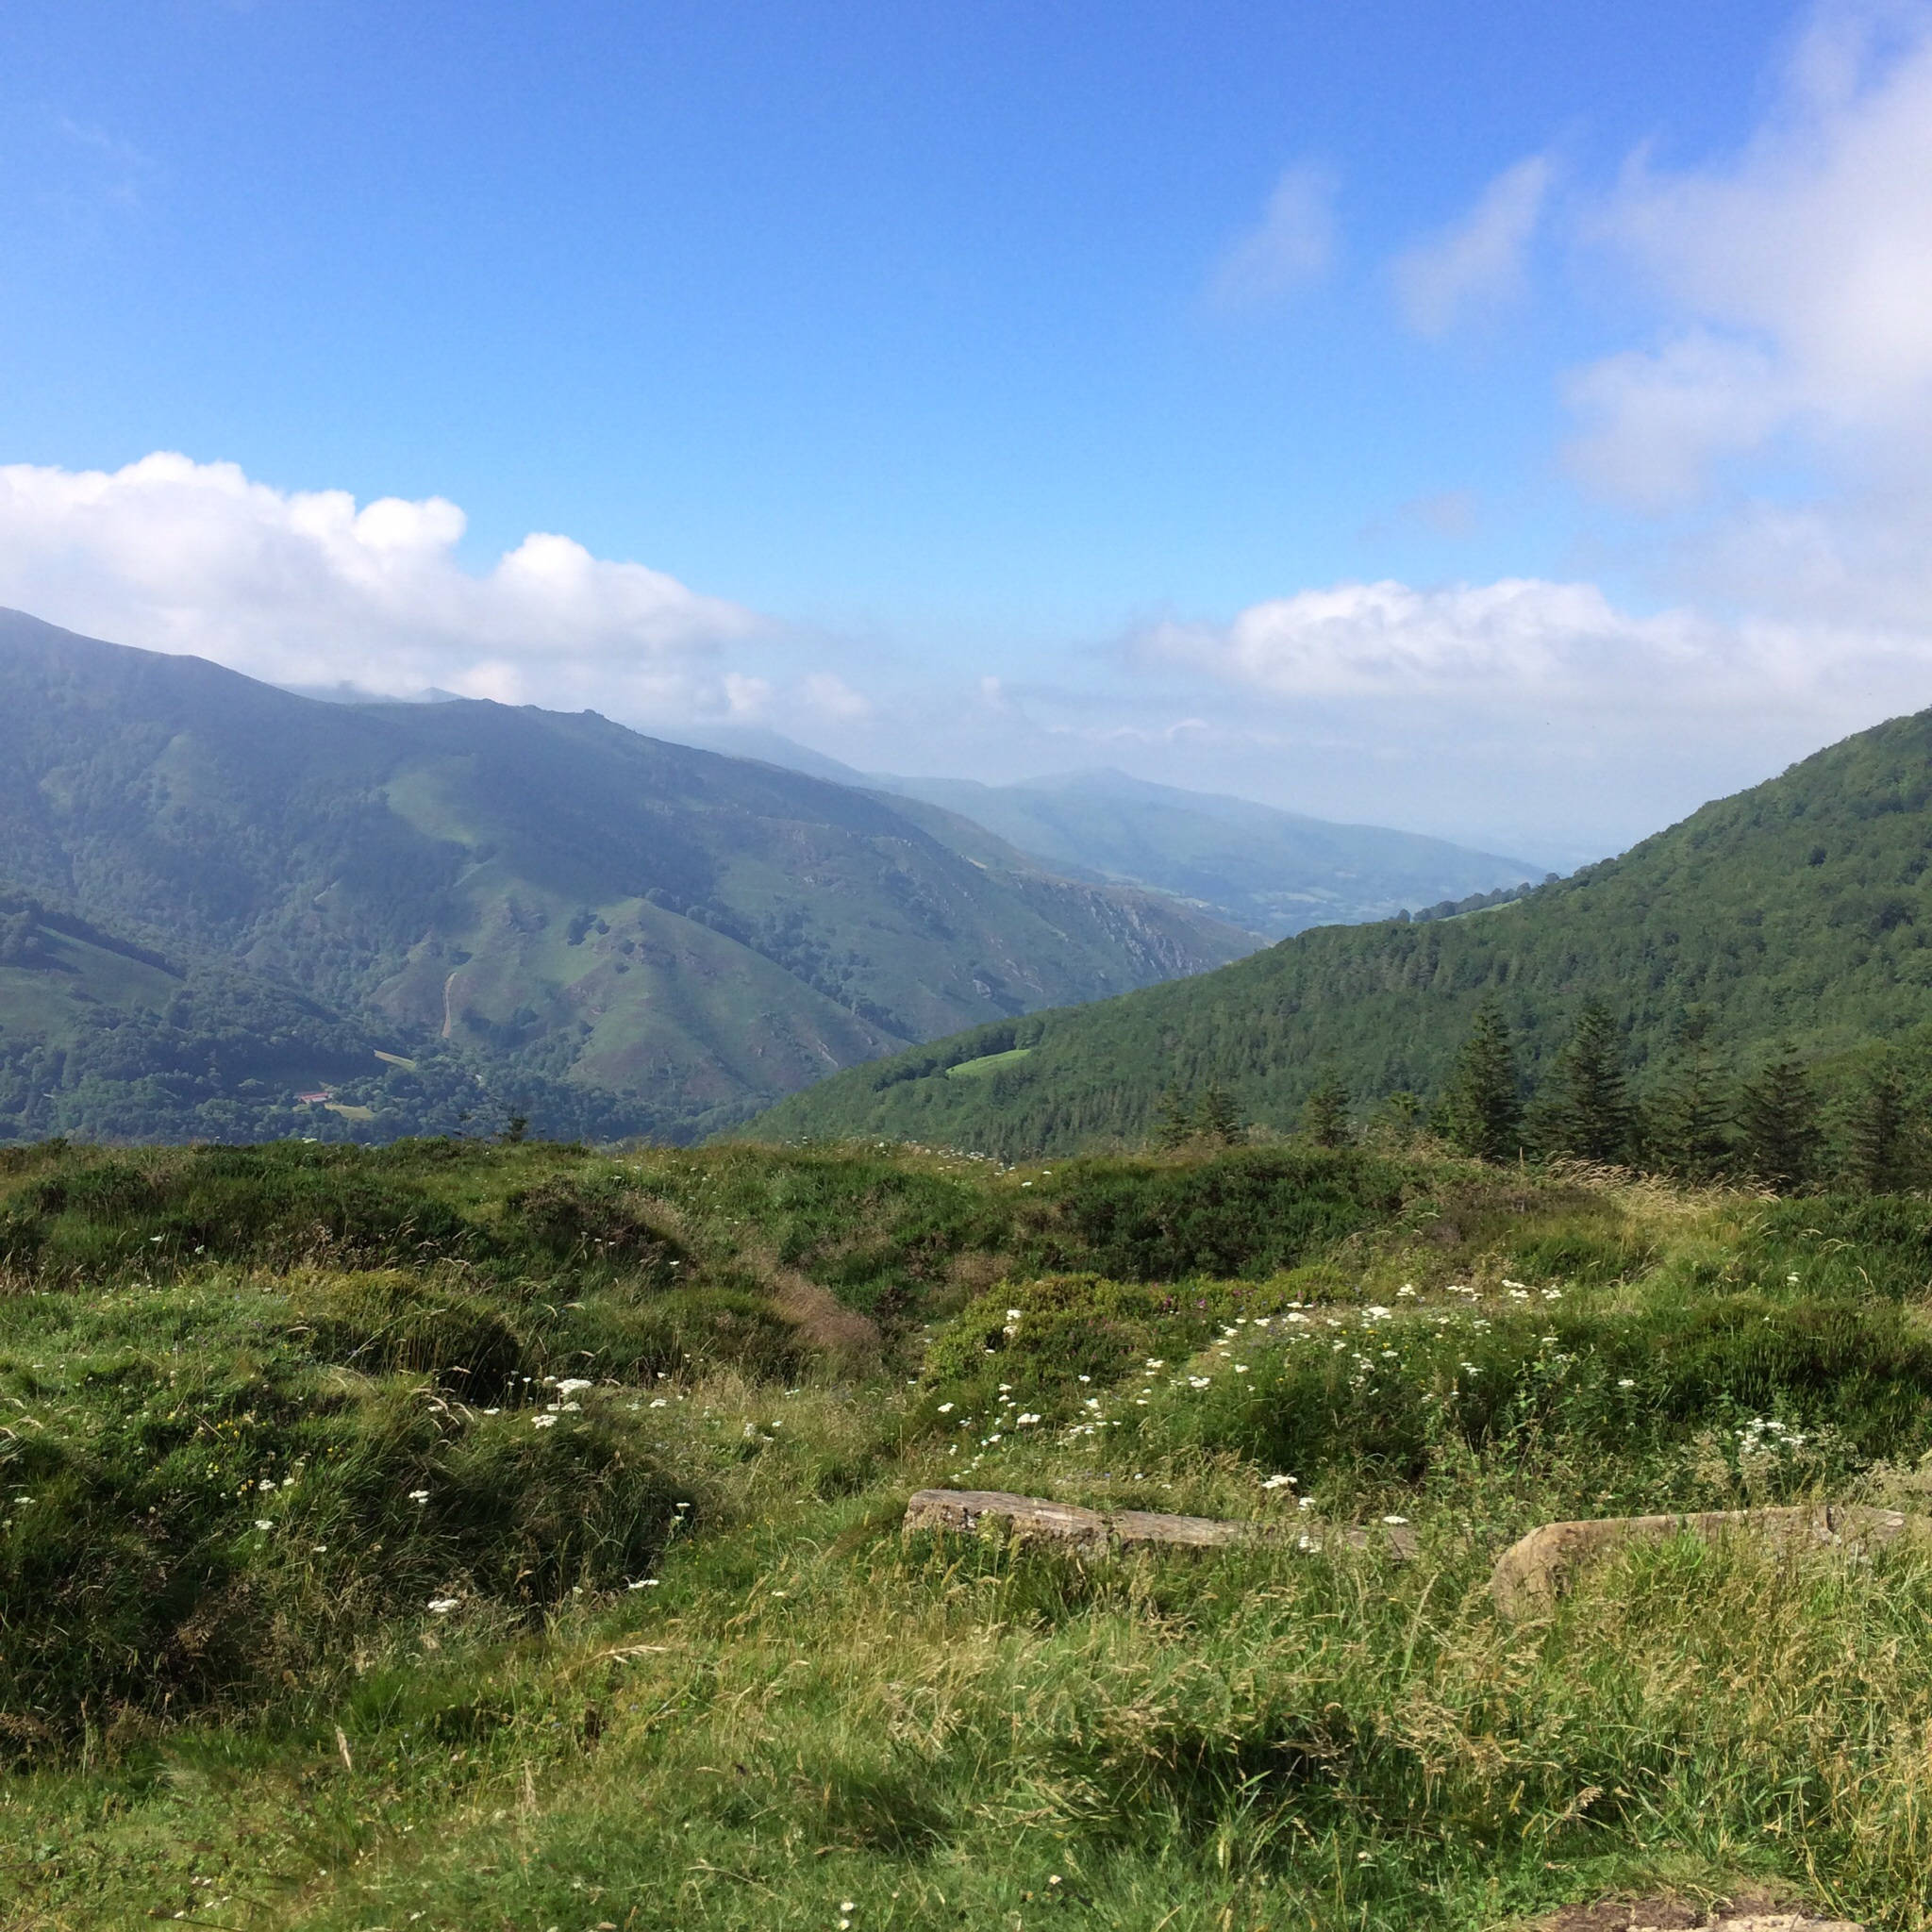 This is a look Eastward from the highest point on the pilgrim journey to Santiago.